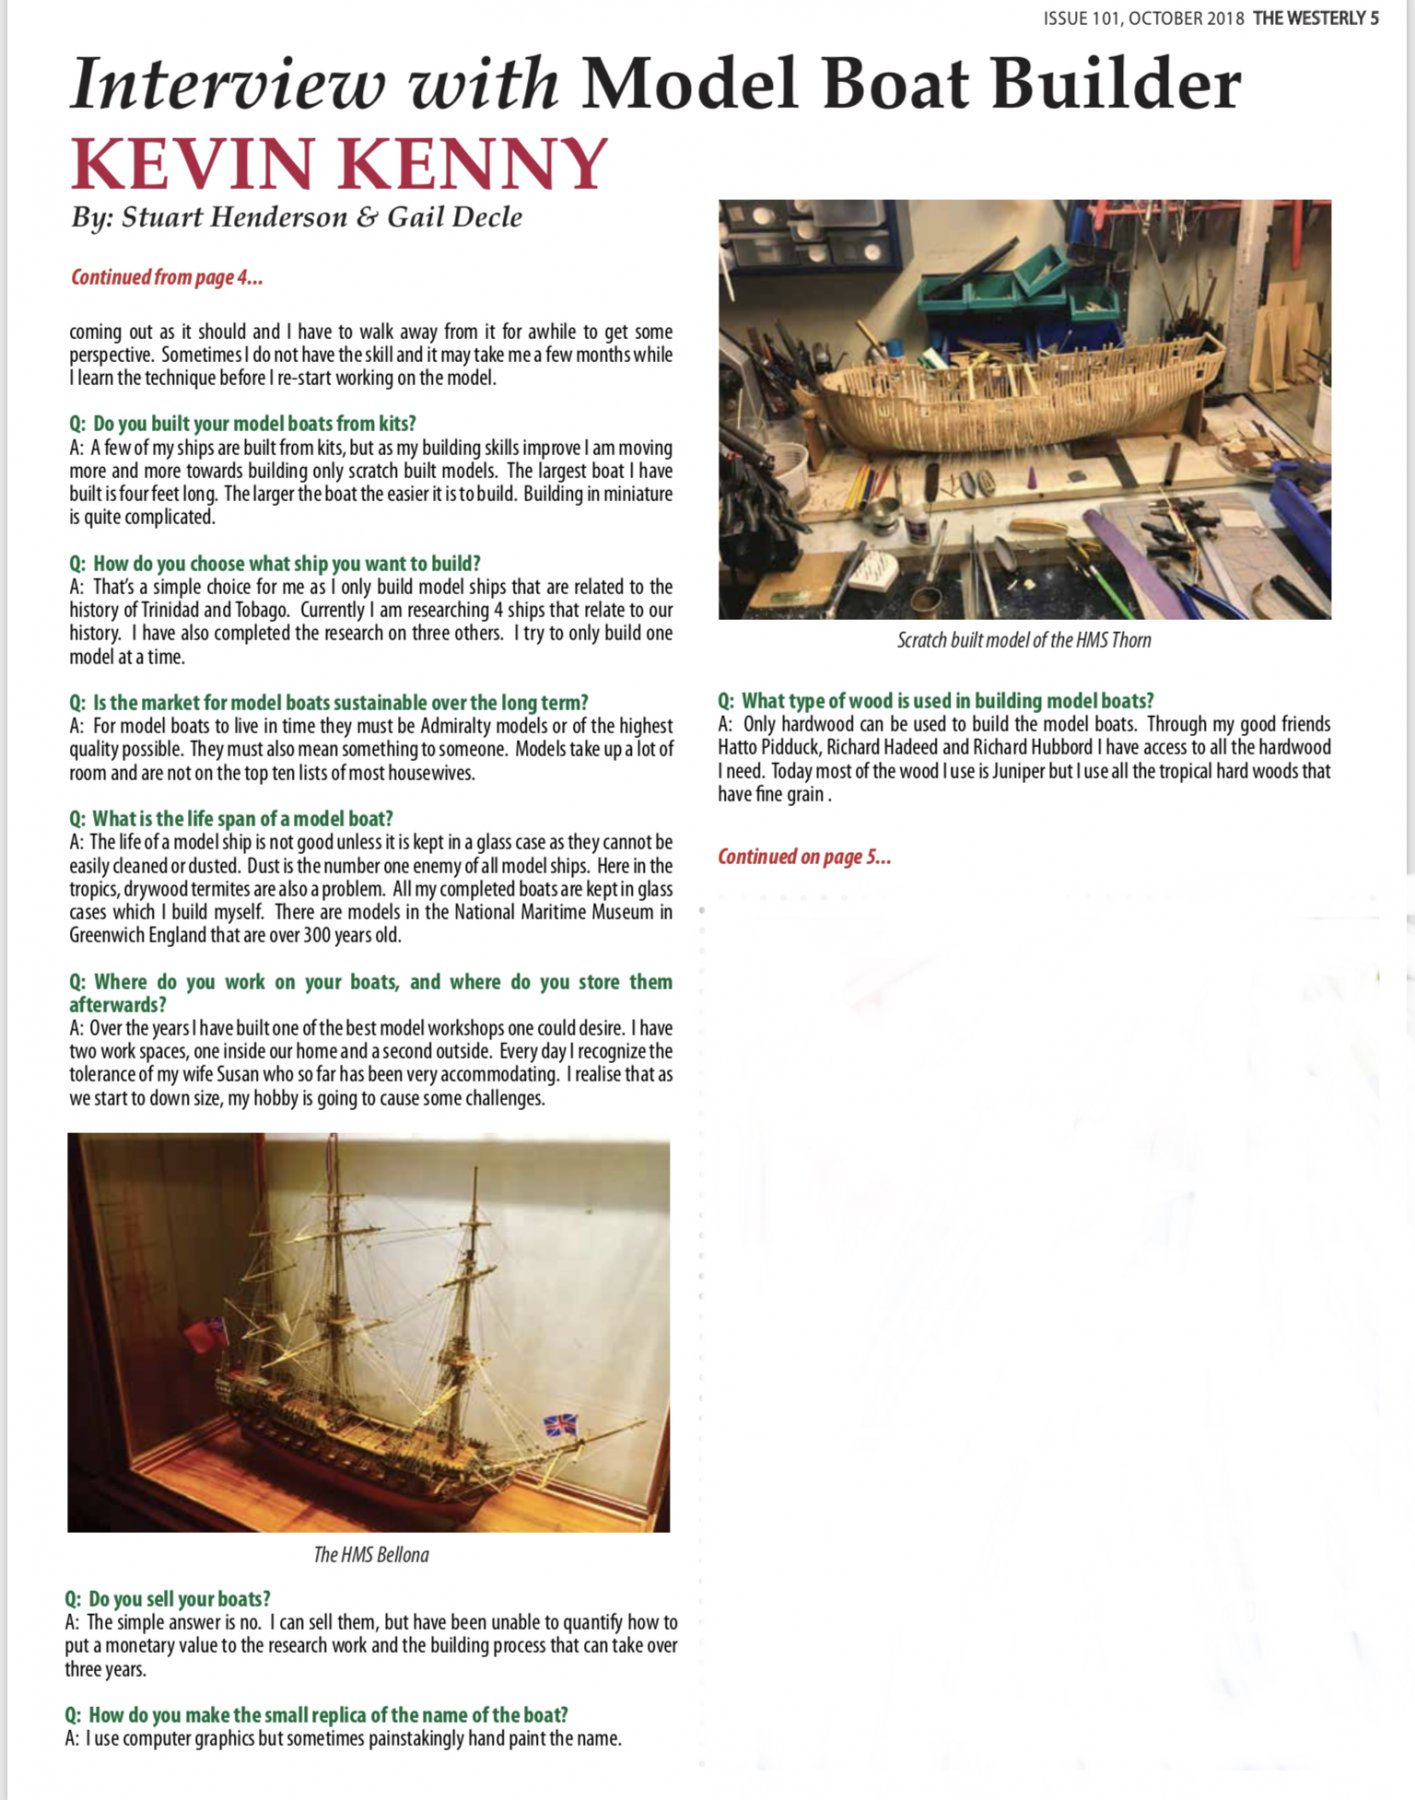 Interview with model builder Kevin Kenny - Nautical General